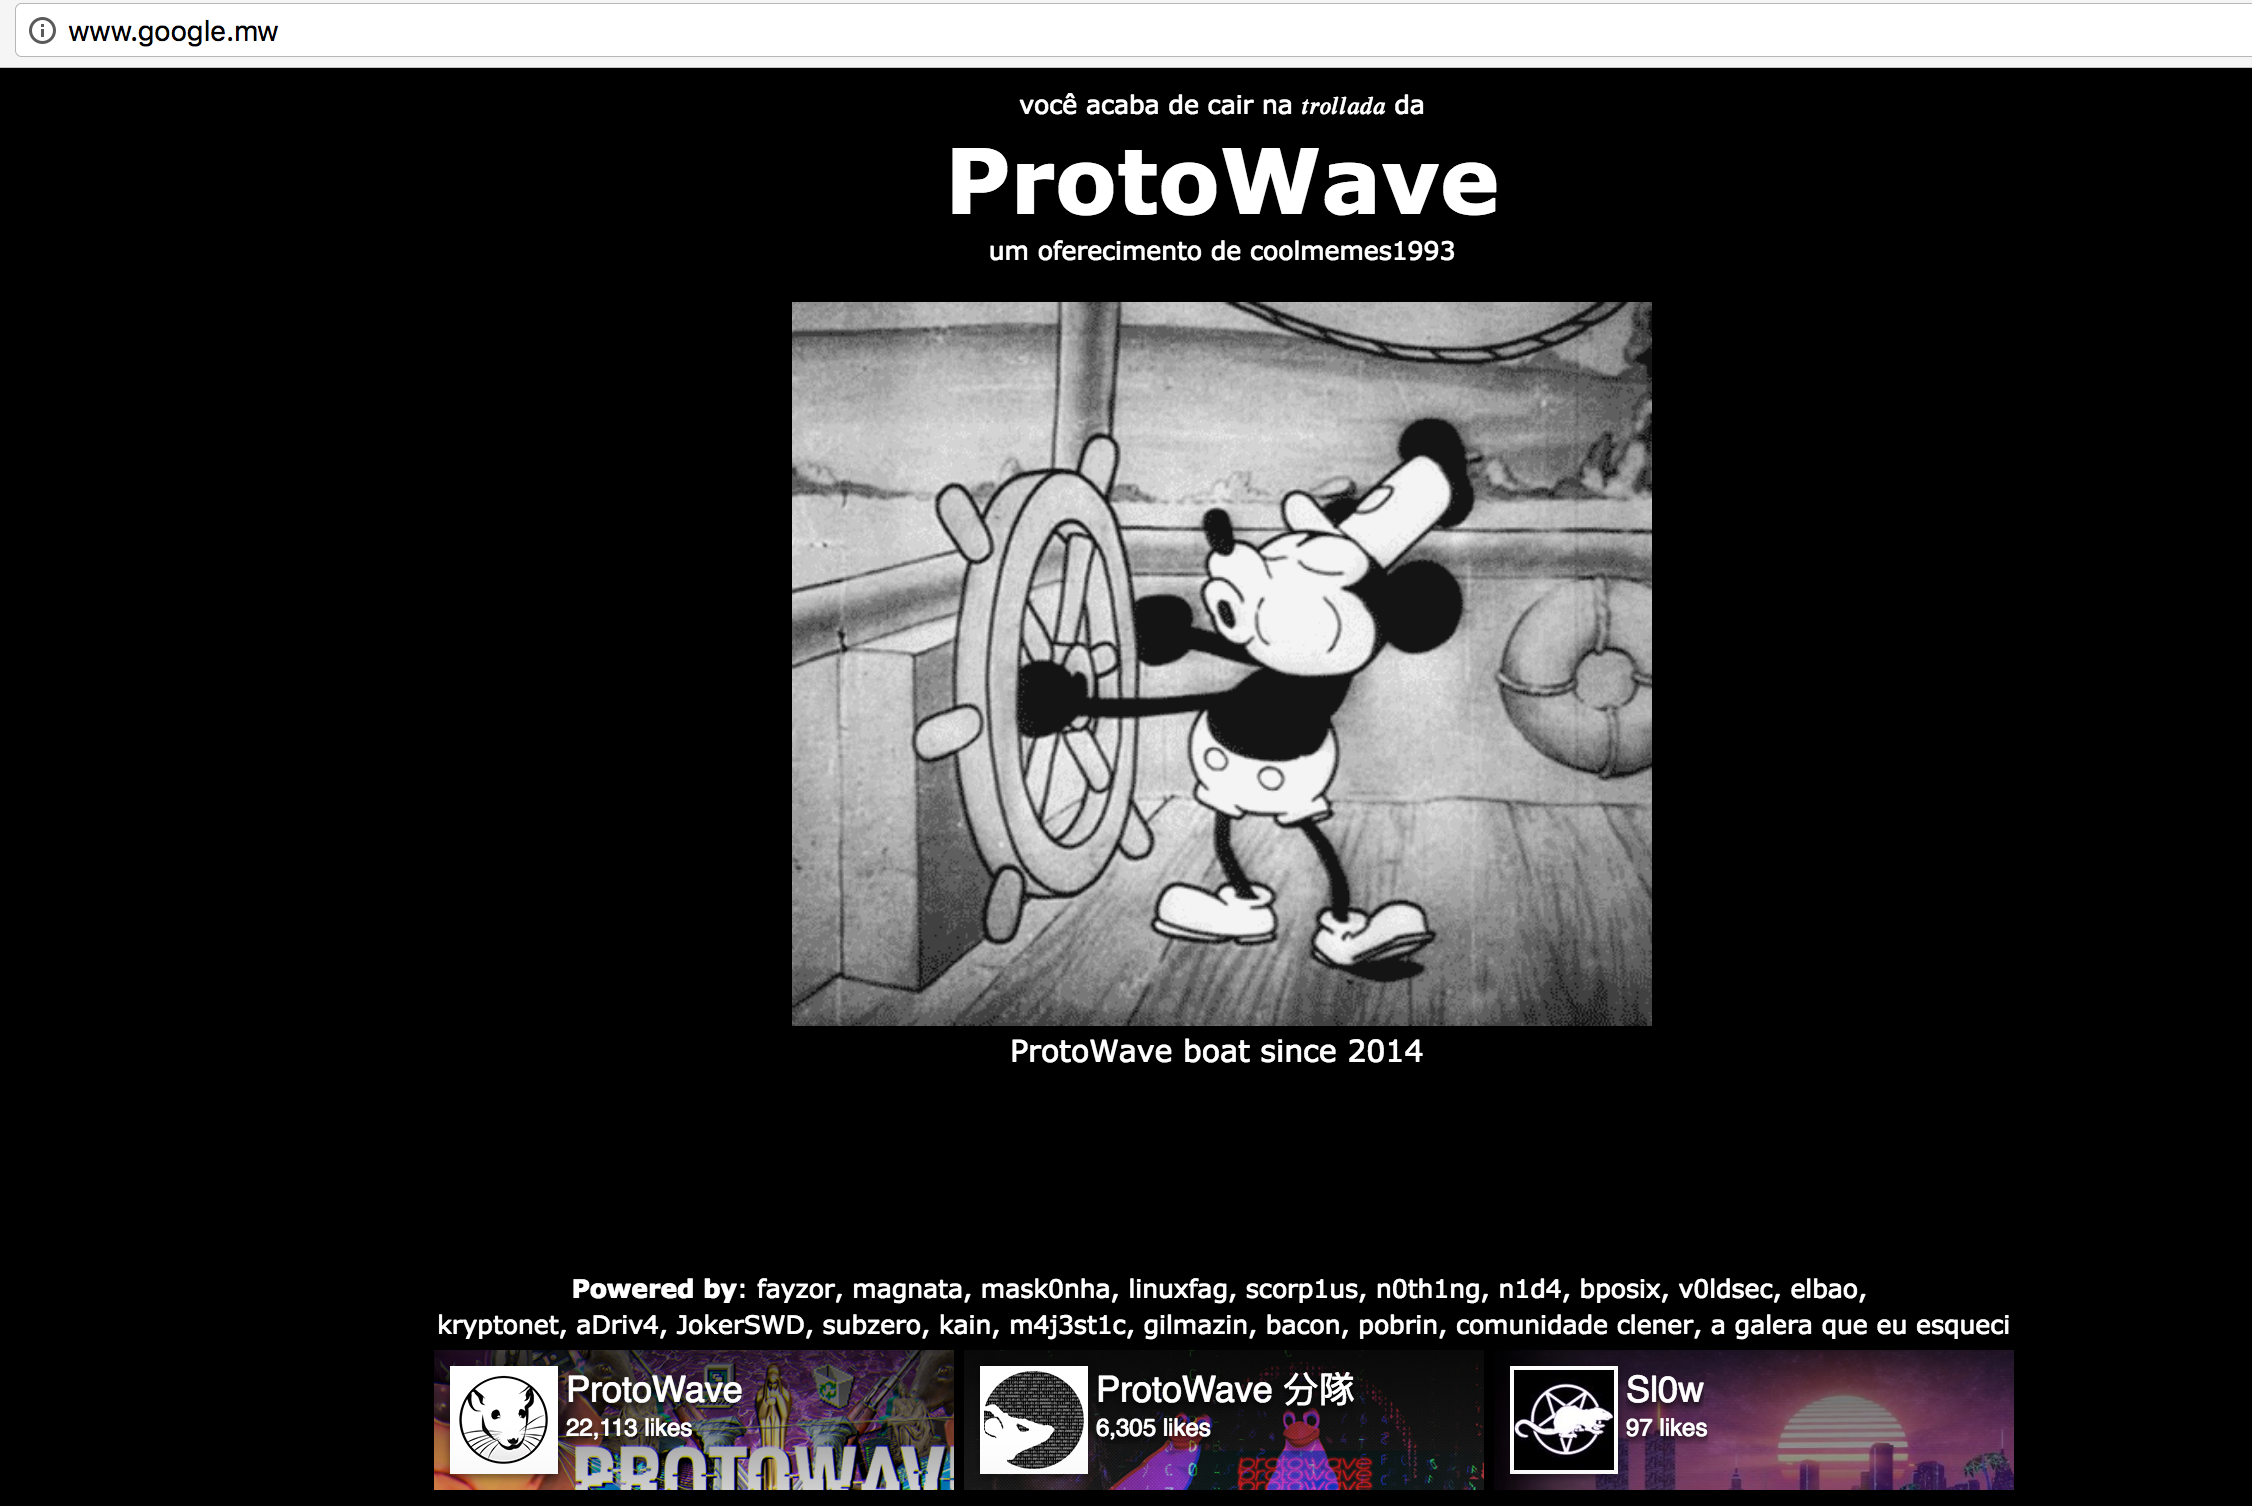 Google Malawi Hacked By ProtoWave